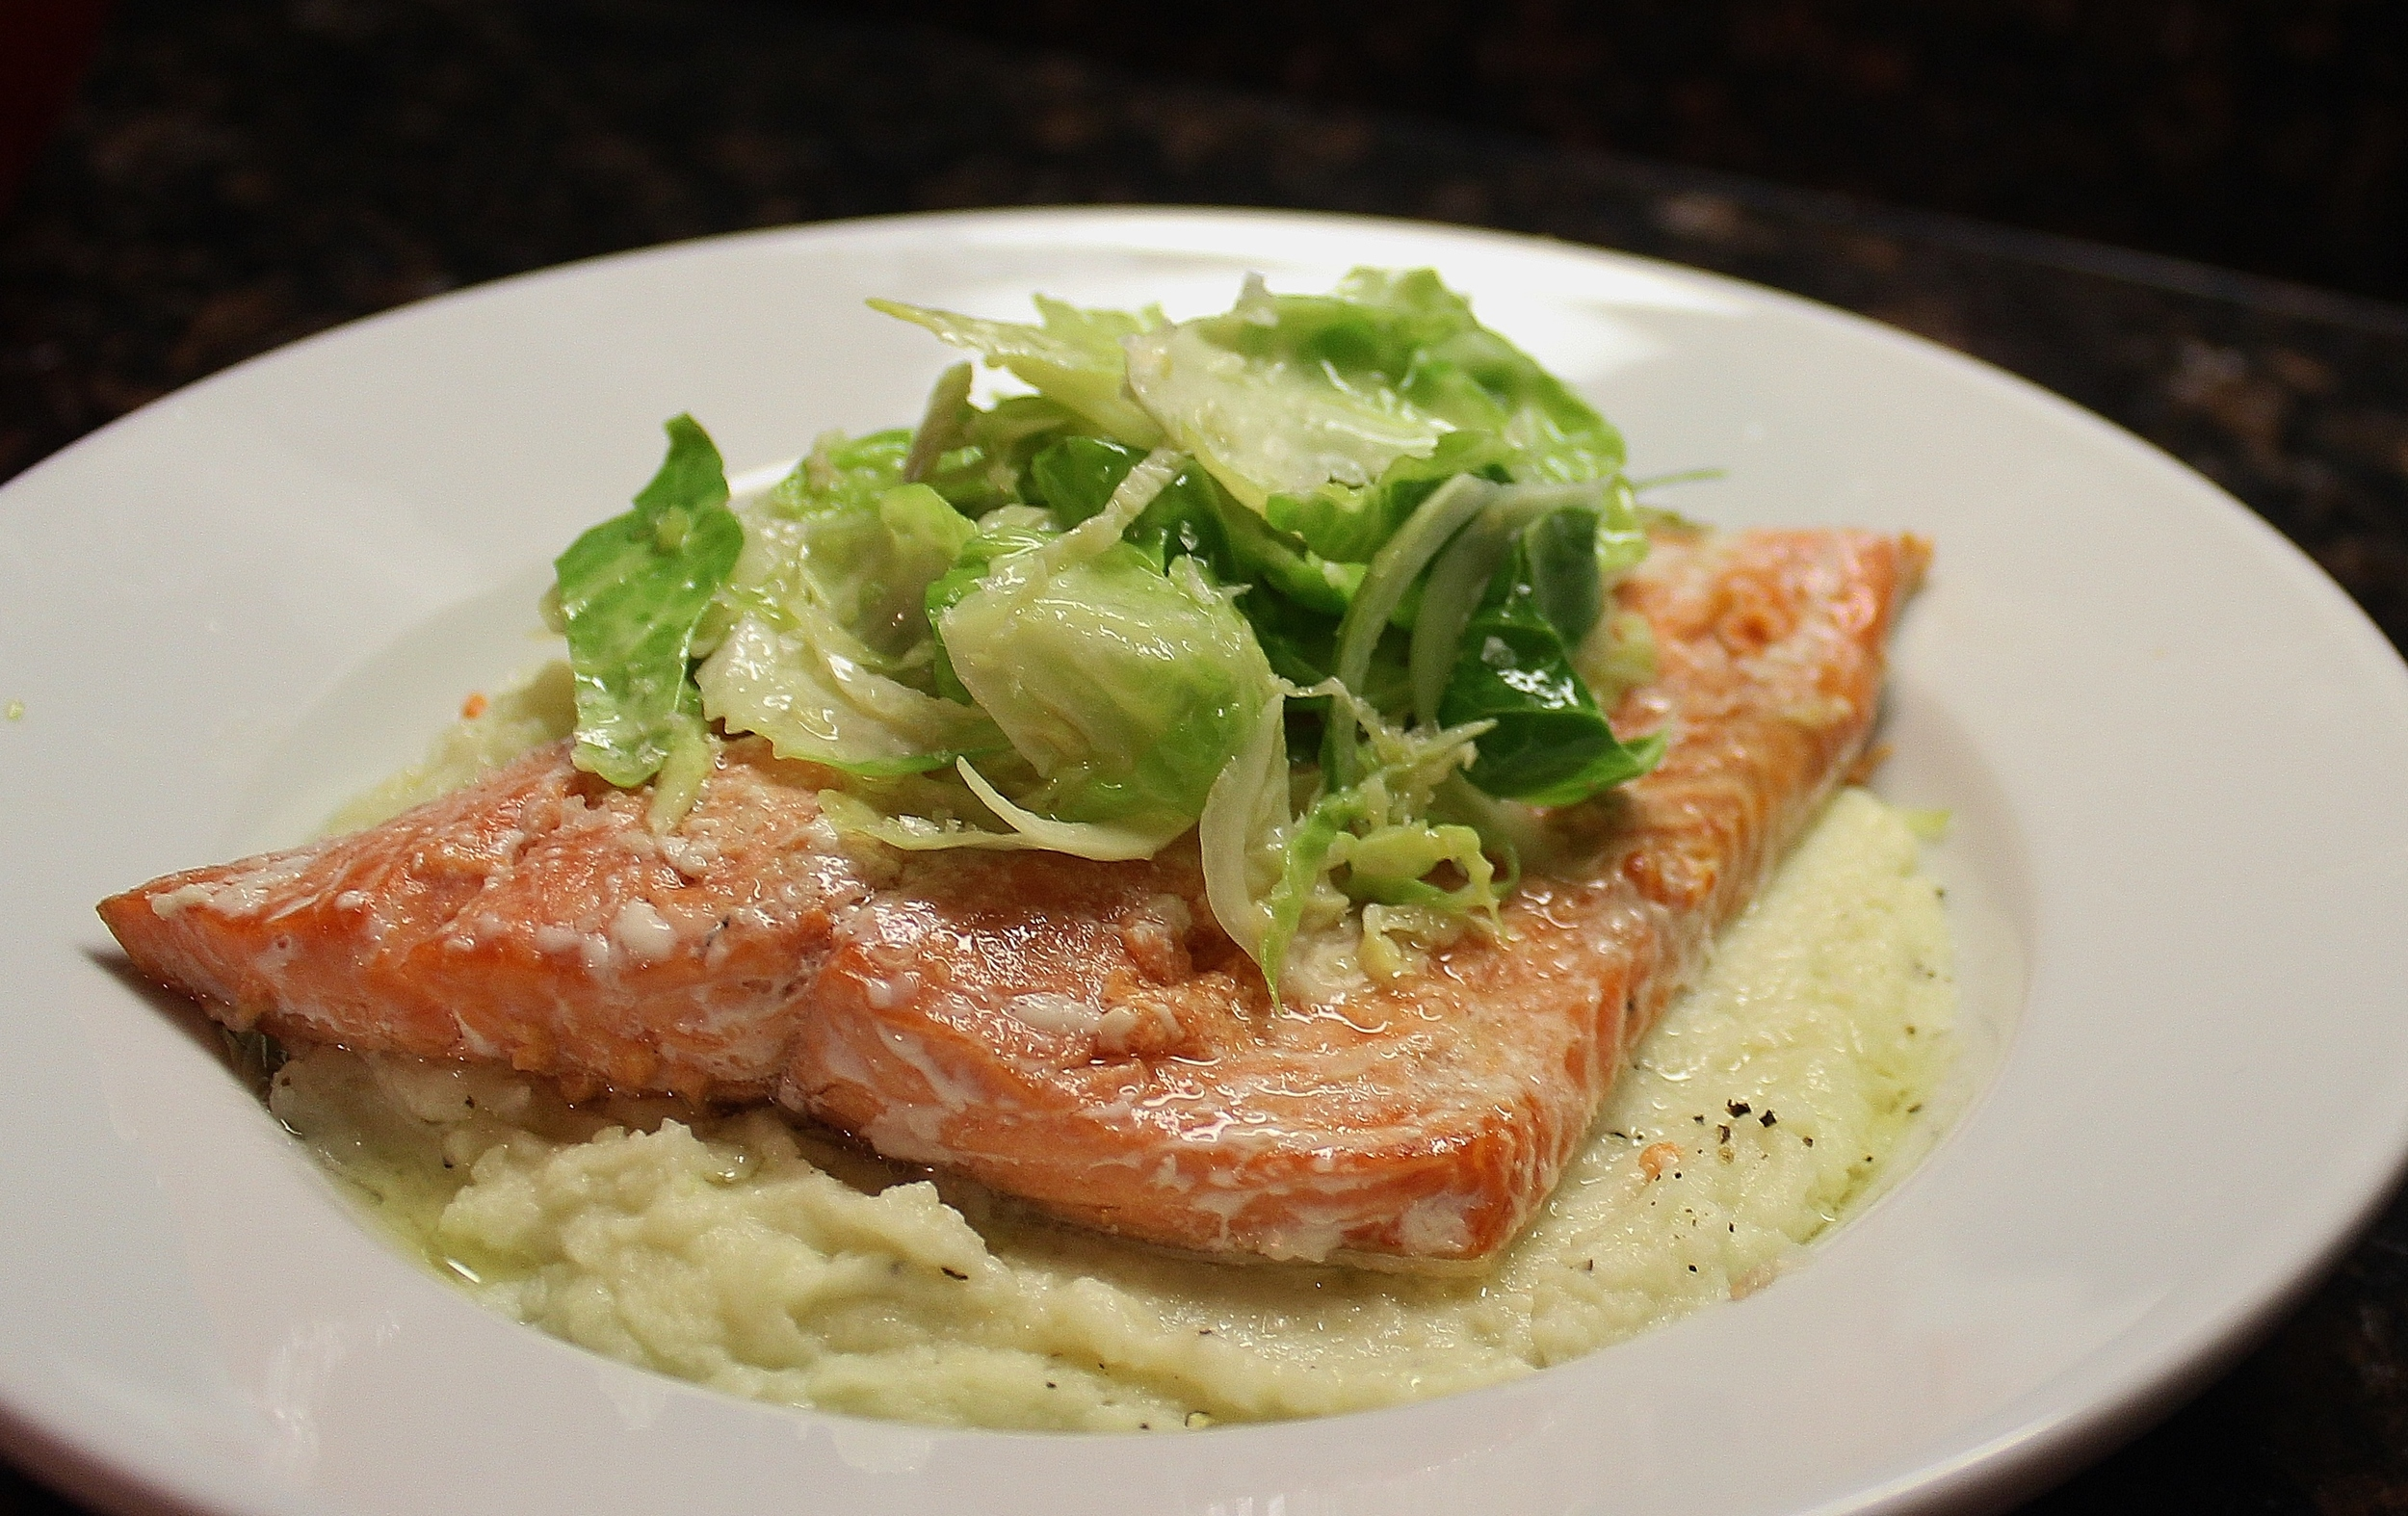 Sockeye salmon with cauliflower mash and brussels sprouts, lemon vinaigrette